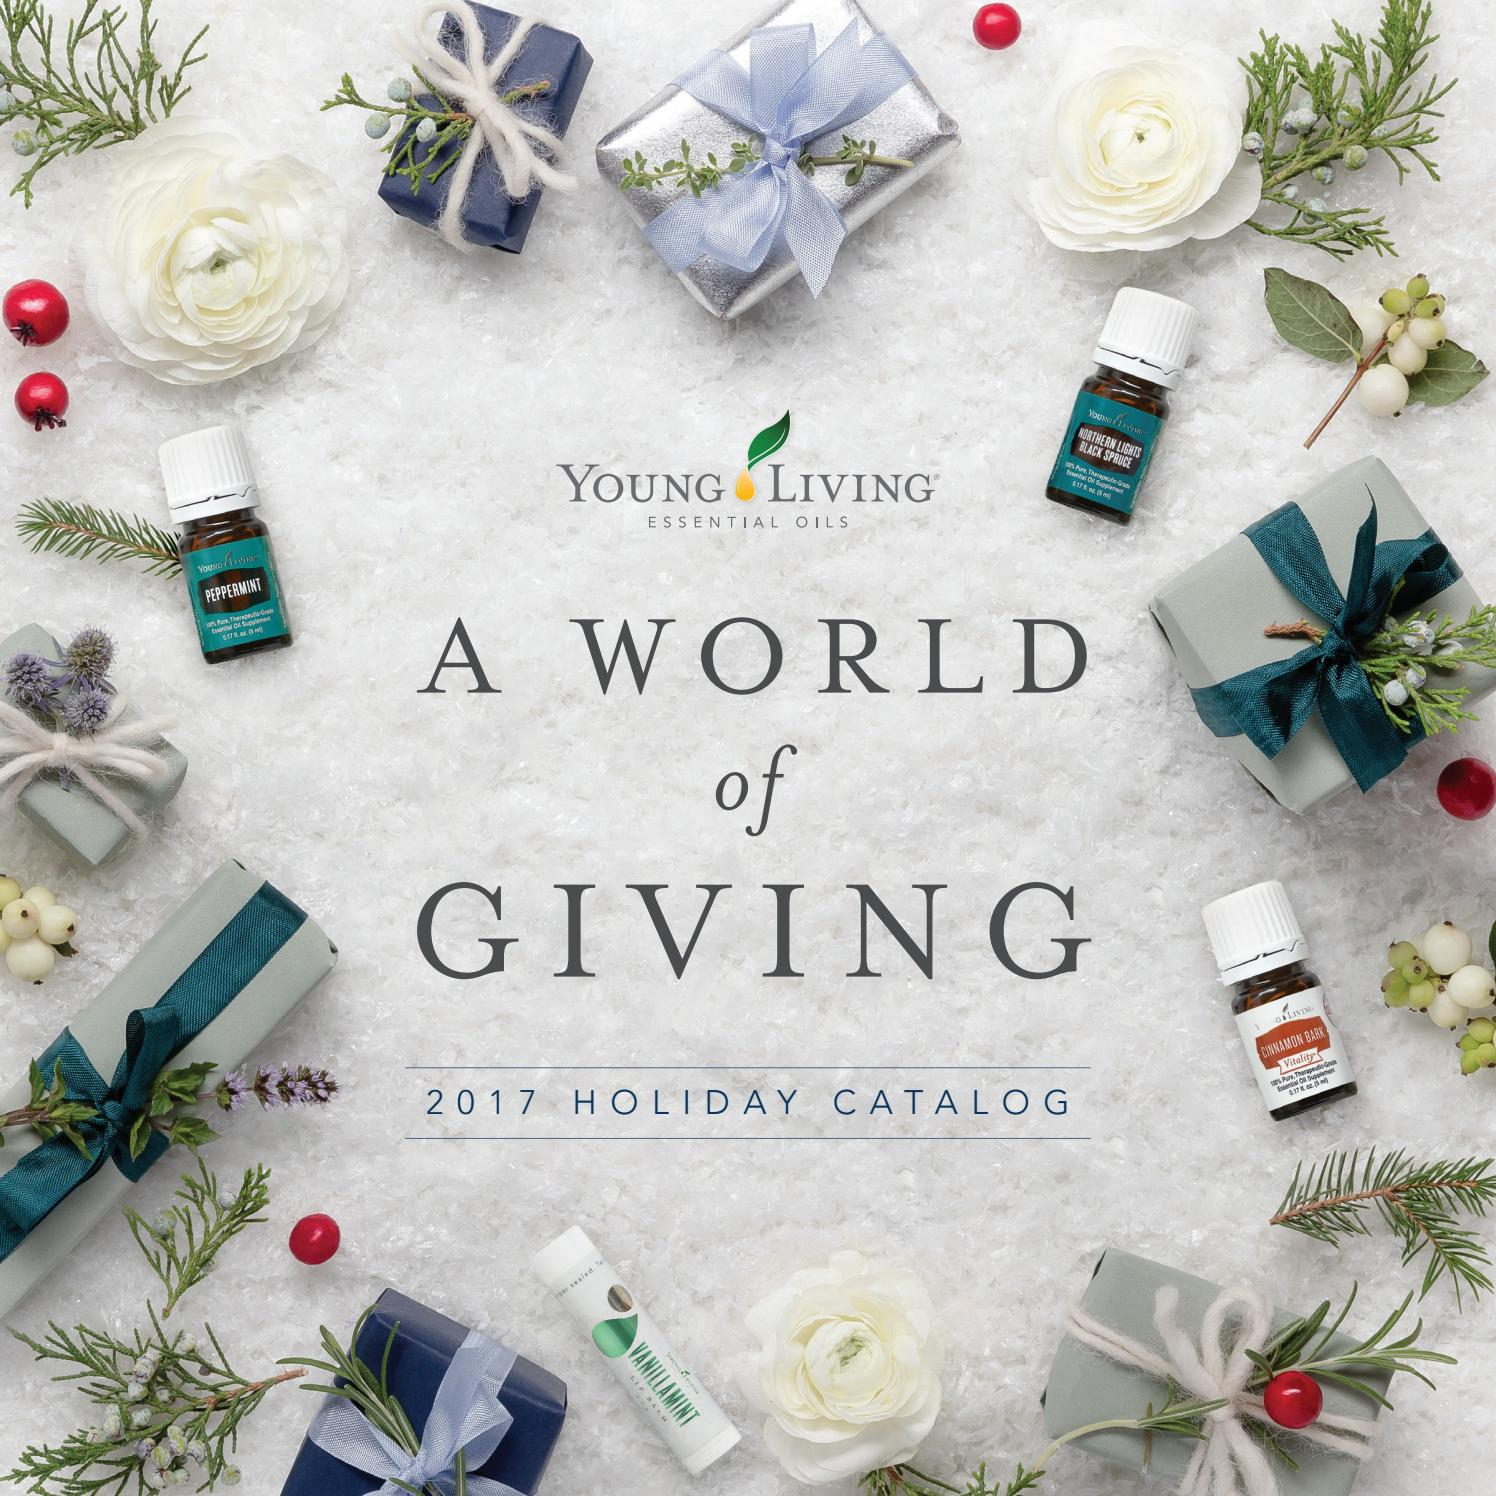 2017 Holiday Catalog By Young Living Essential Oils Issuu